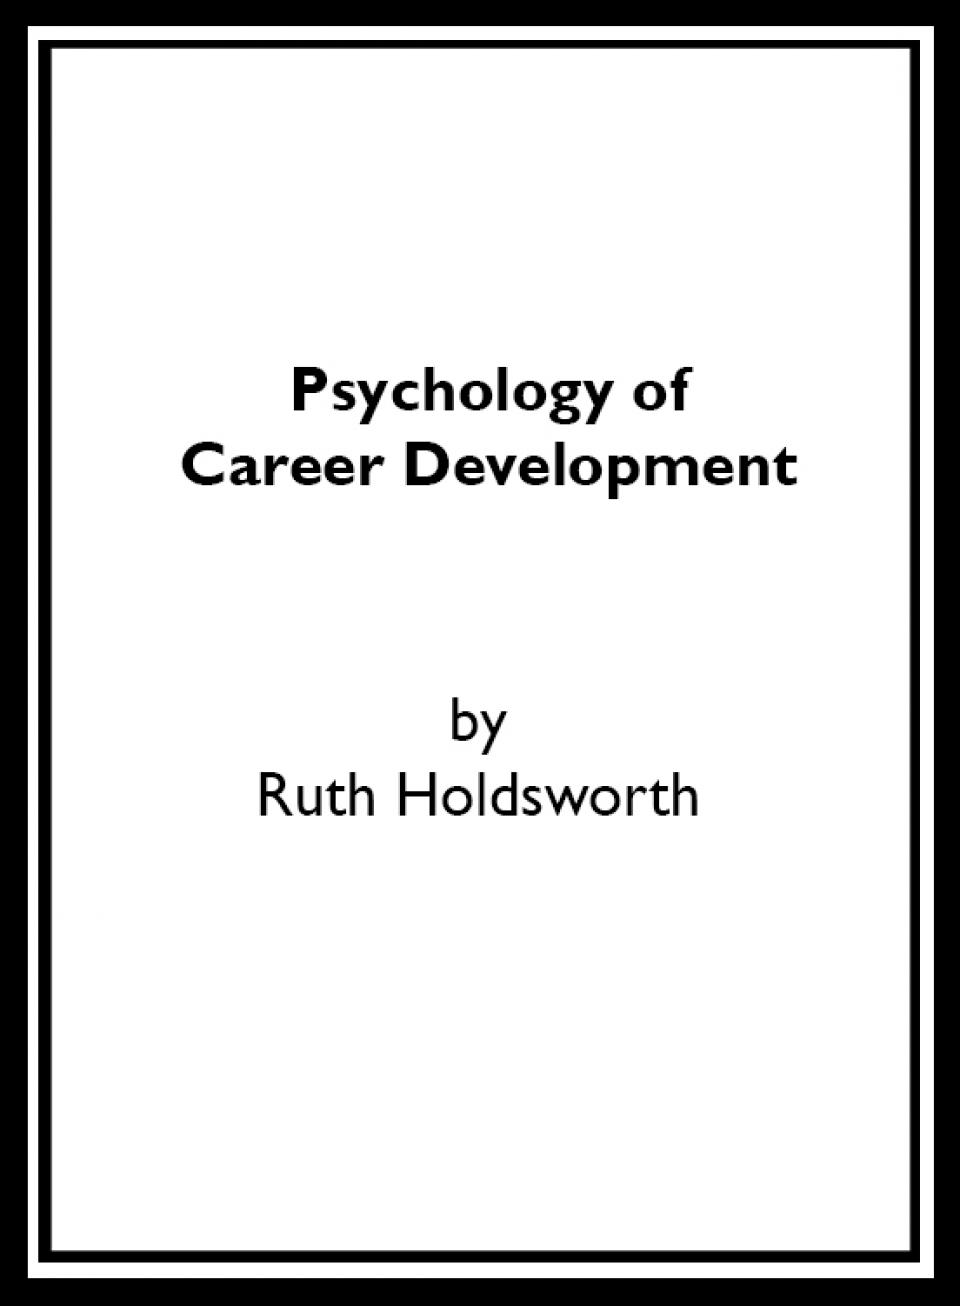 Psychology of Career Development